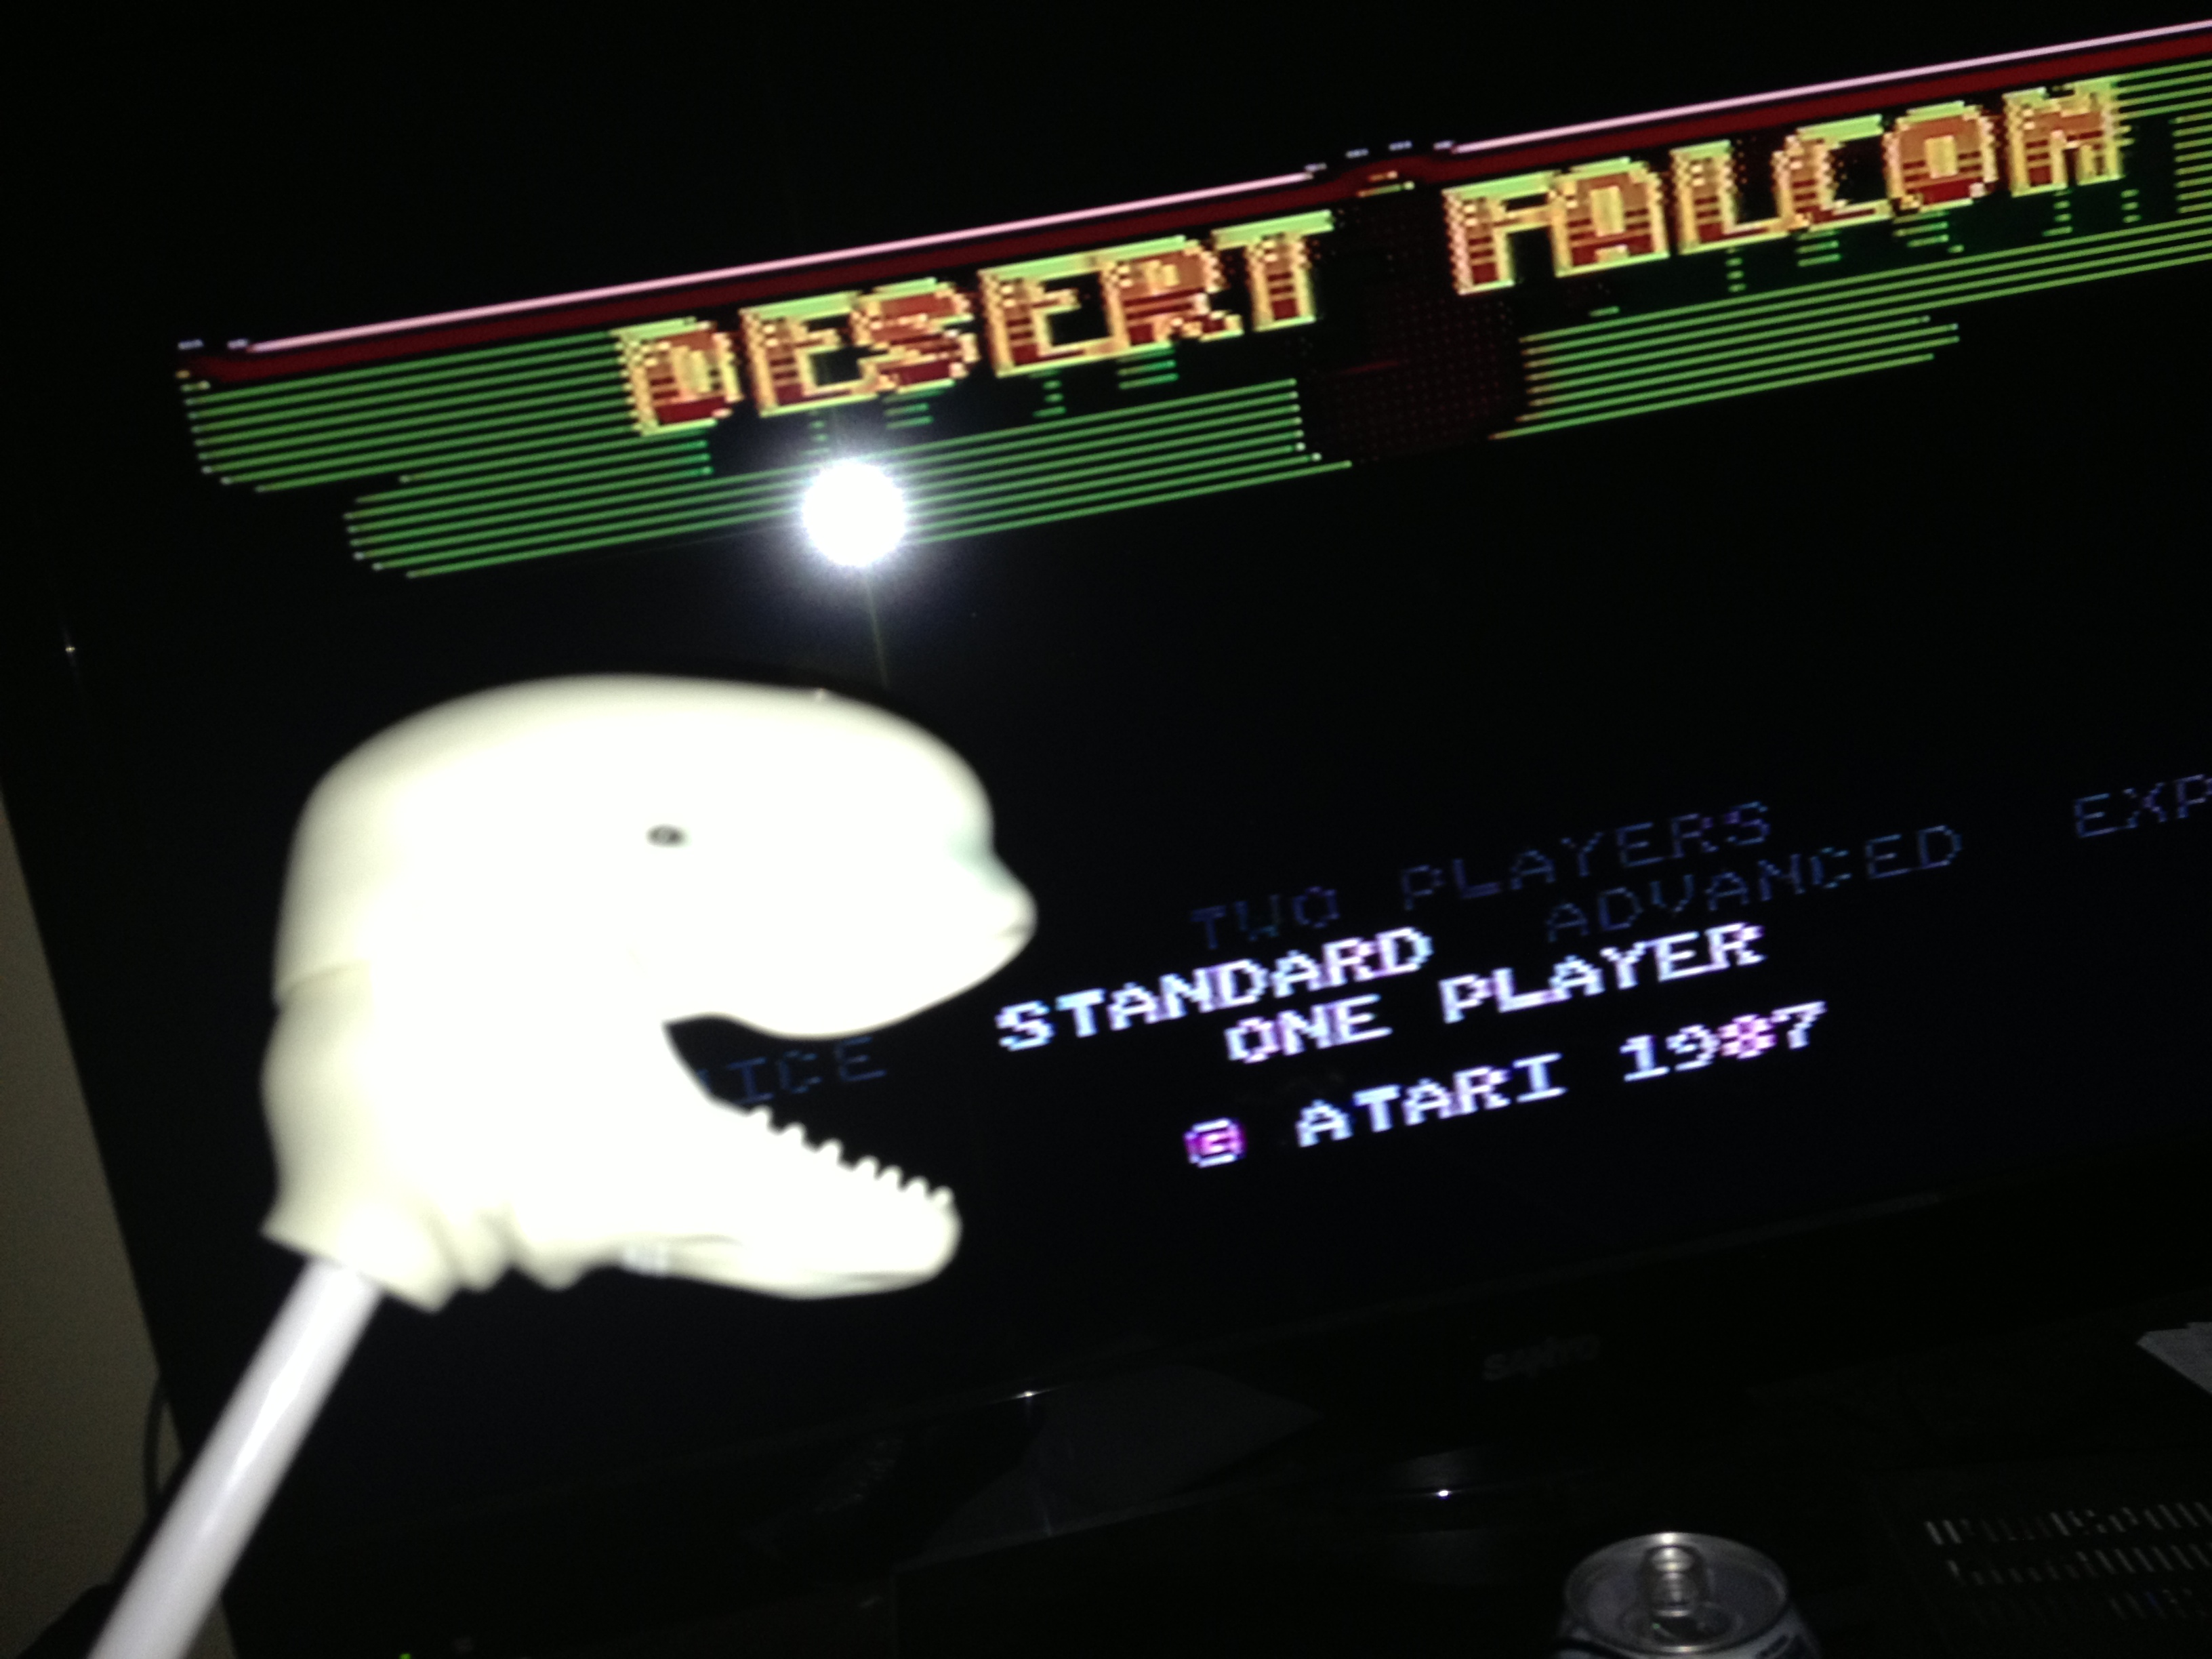 Desert Falcon: Standard 194,952 points